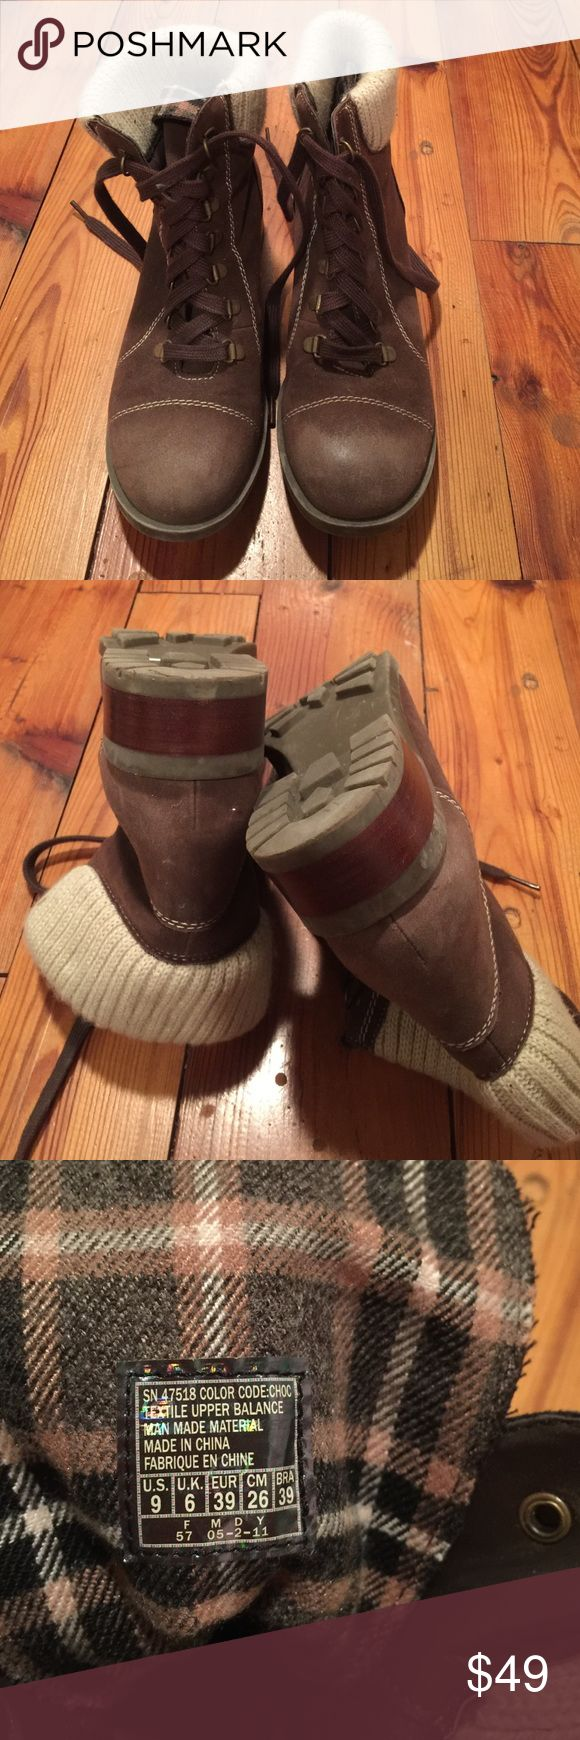 NWOT SKETCHERS boots NWOT SKETCHERS boots worn once. No stains or signs of wear. Toe has distressed look as shown in pics. Great fashion and function boot for fall! Sketchers Shoes Lace Up Boots